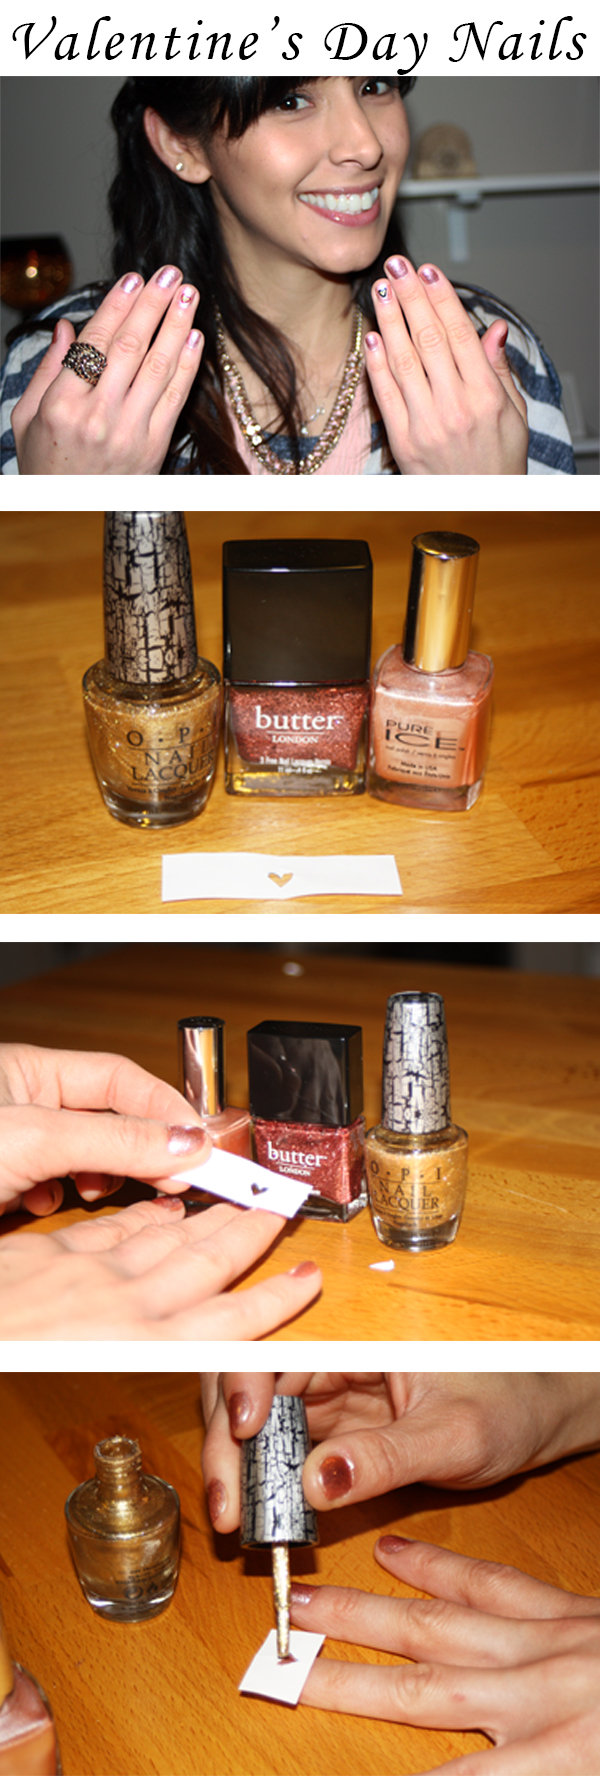 nail-art-how-to-vday-hearts2